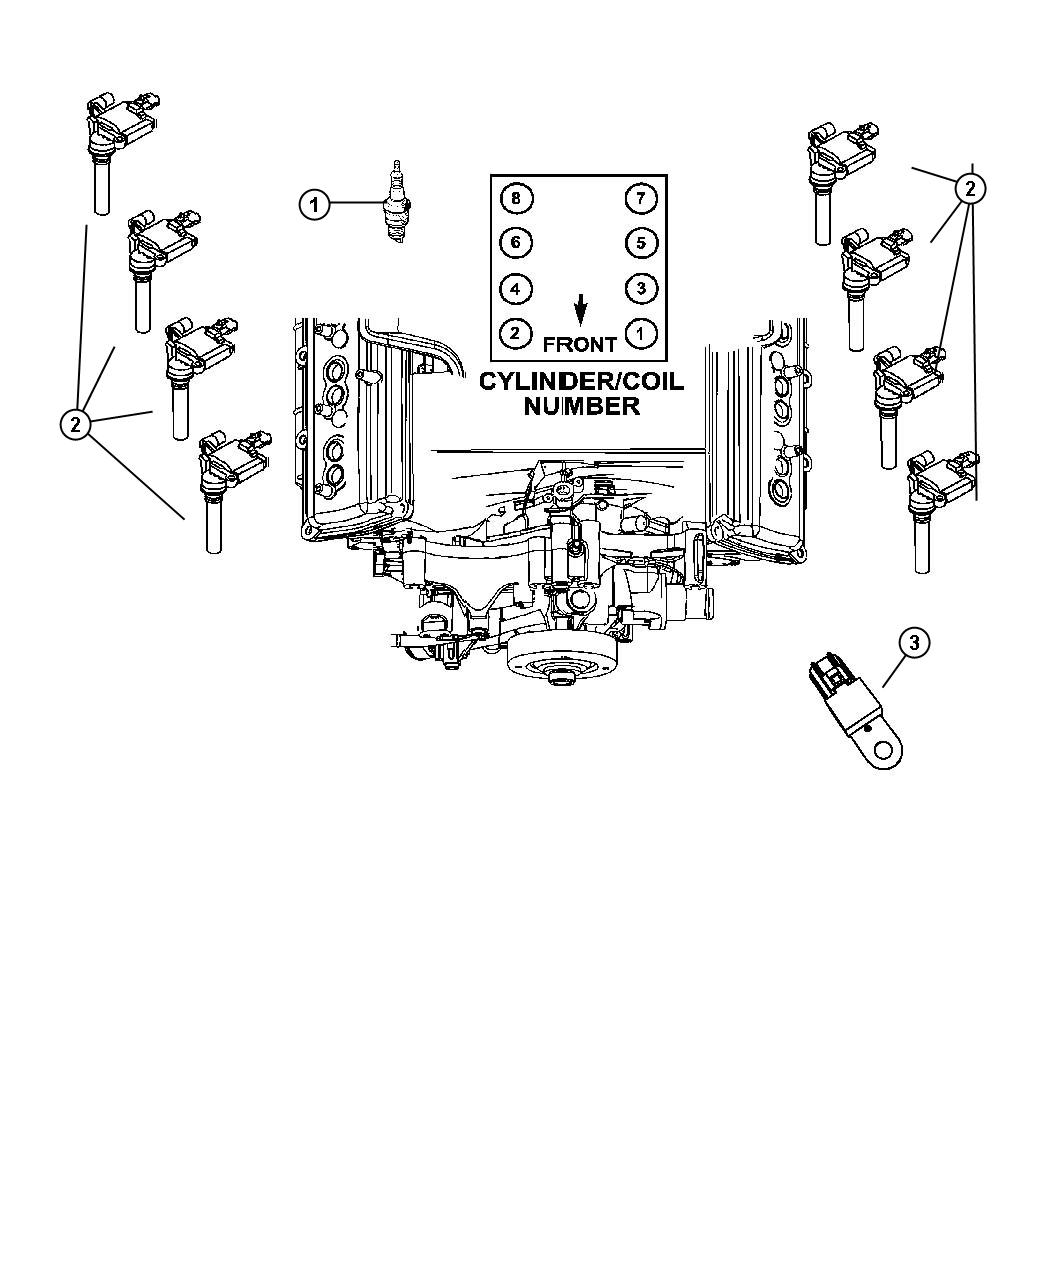 2003 Dodge Hemi Spark Plug Wire Diagram  When I Was